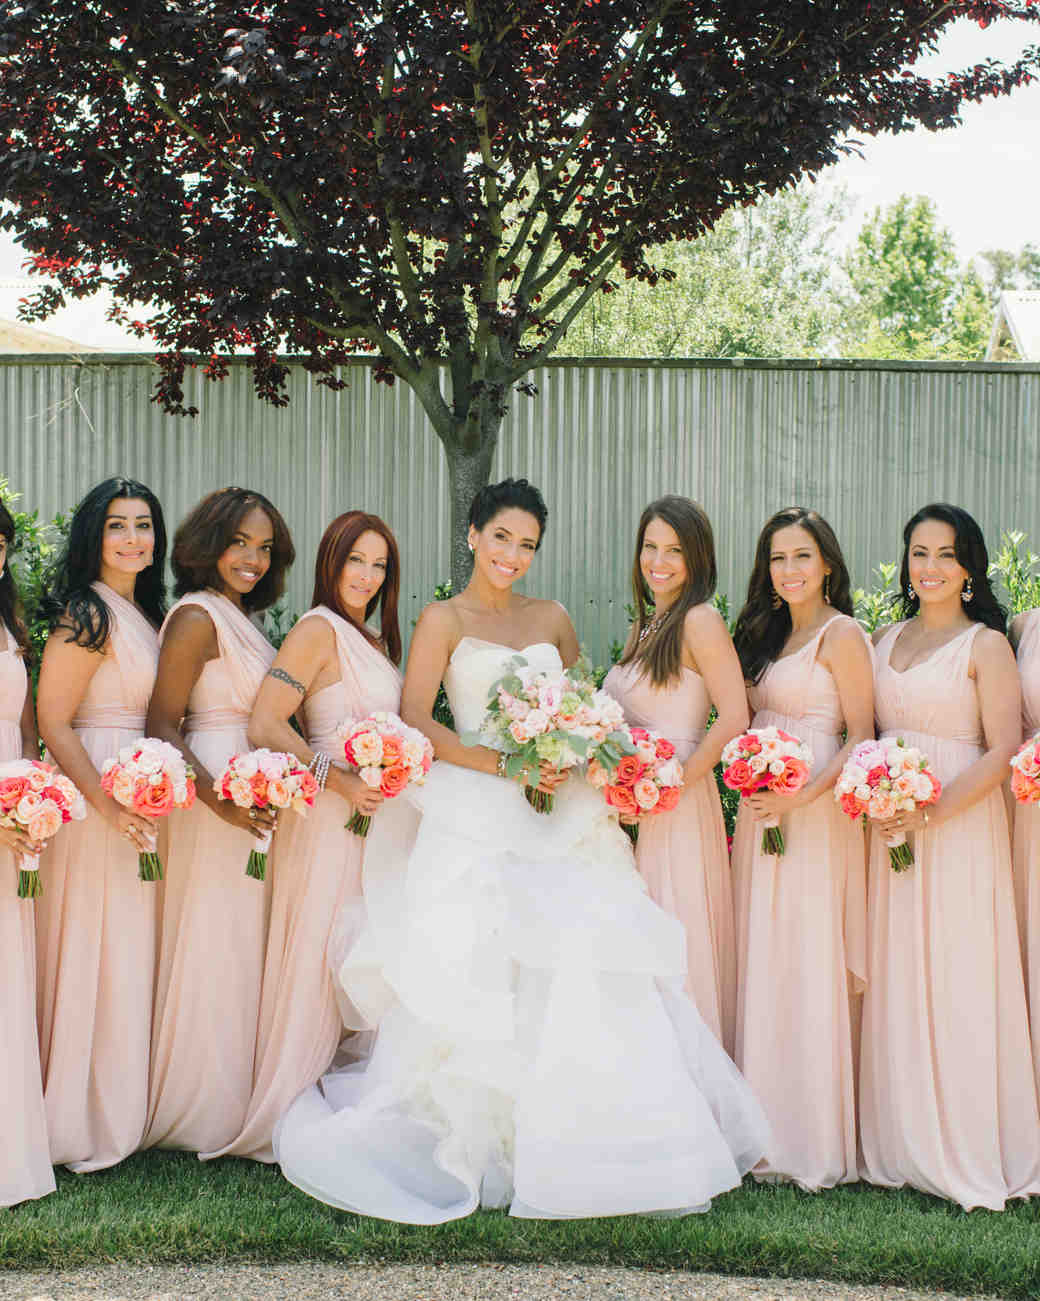 vanessa-joe-wedding-bridesmaids-7509-s111736-1214.jpg